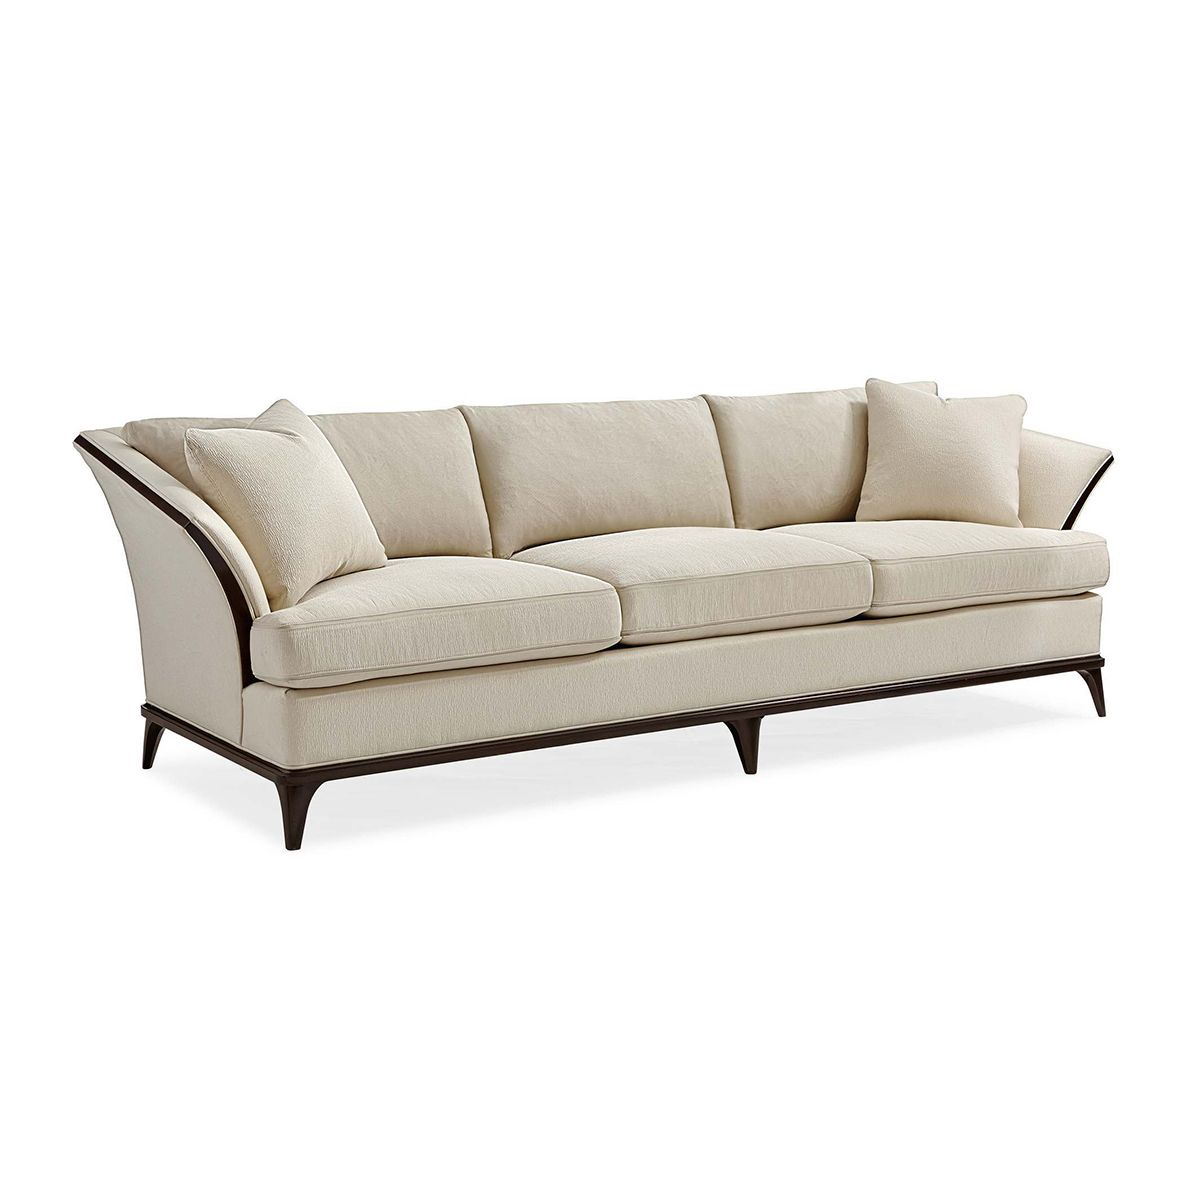 Online Sofa Store: Sofa With Wood Trim Inset In 2019